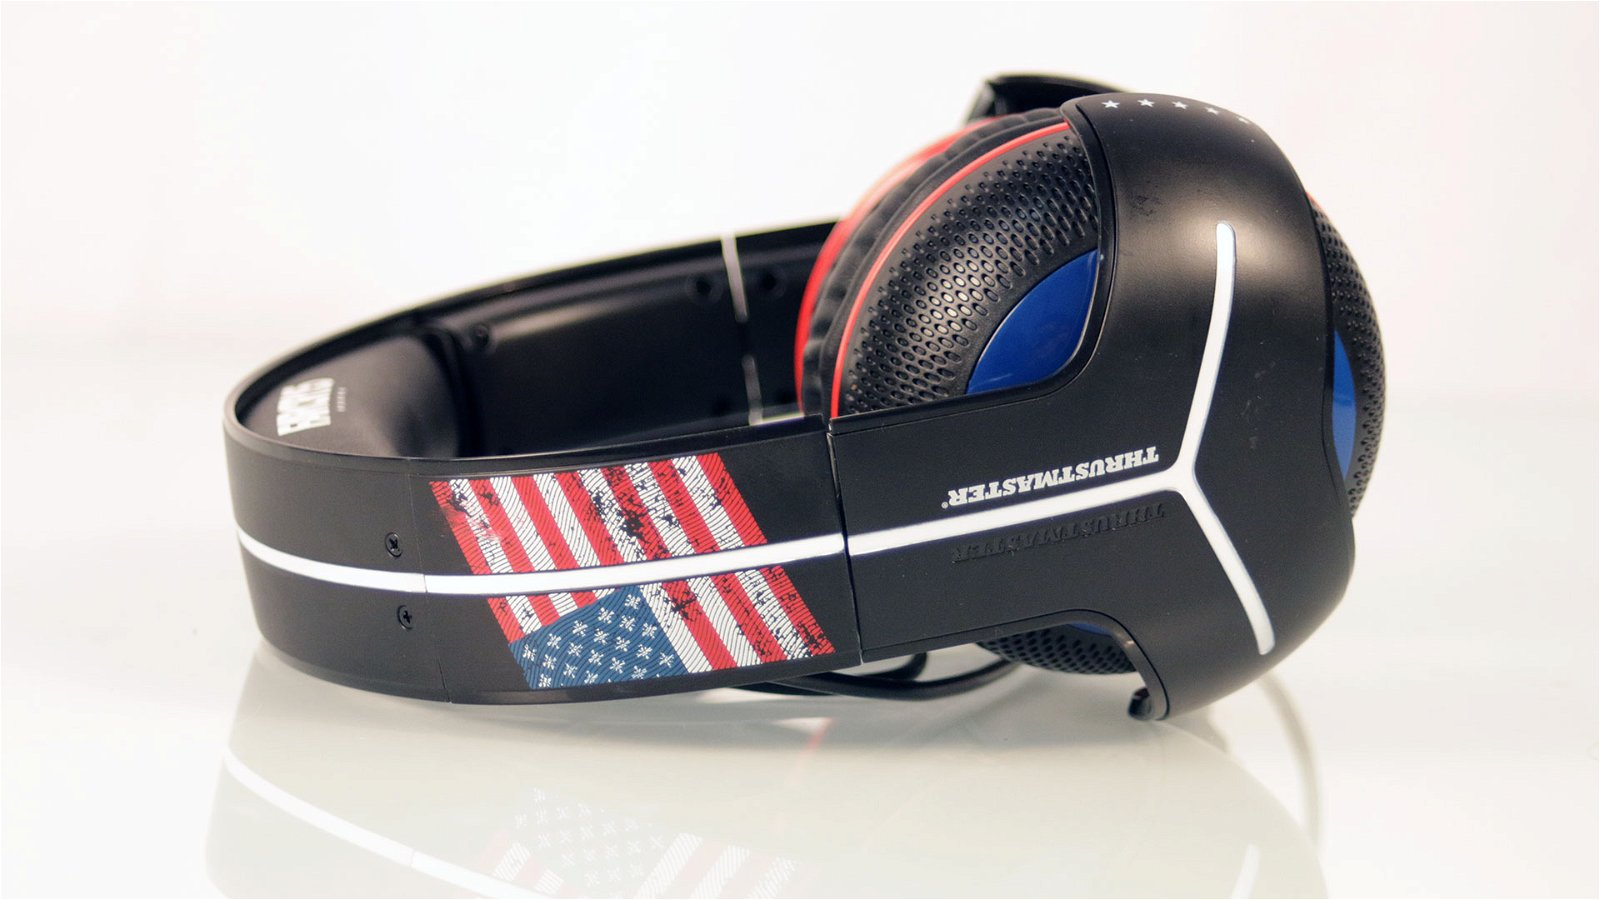 Thrustmaster Y-300CPX Far Cry 5 Edition (Headset) Review